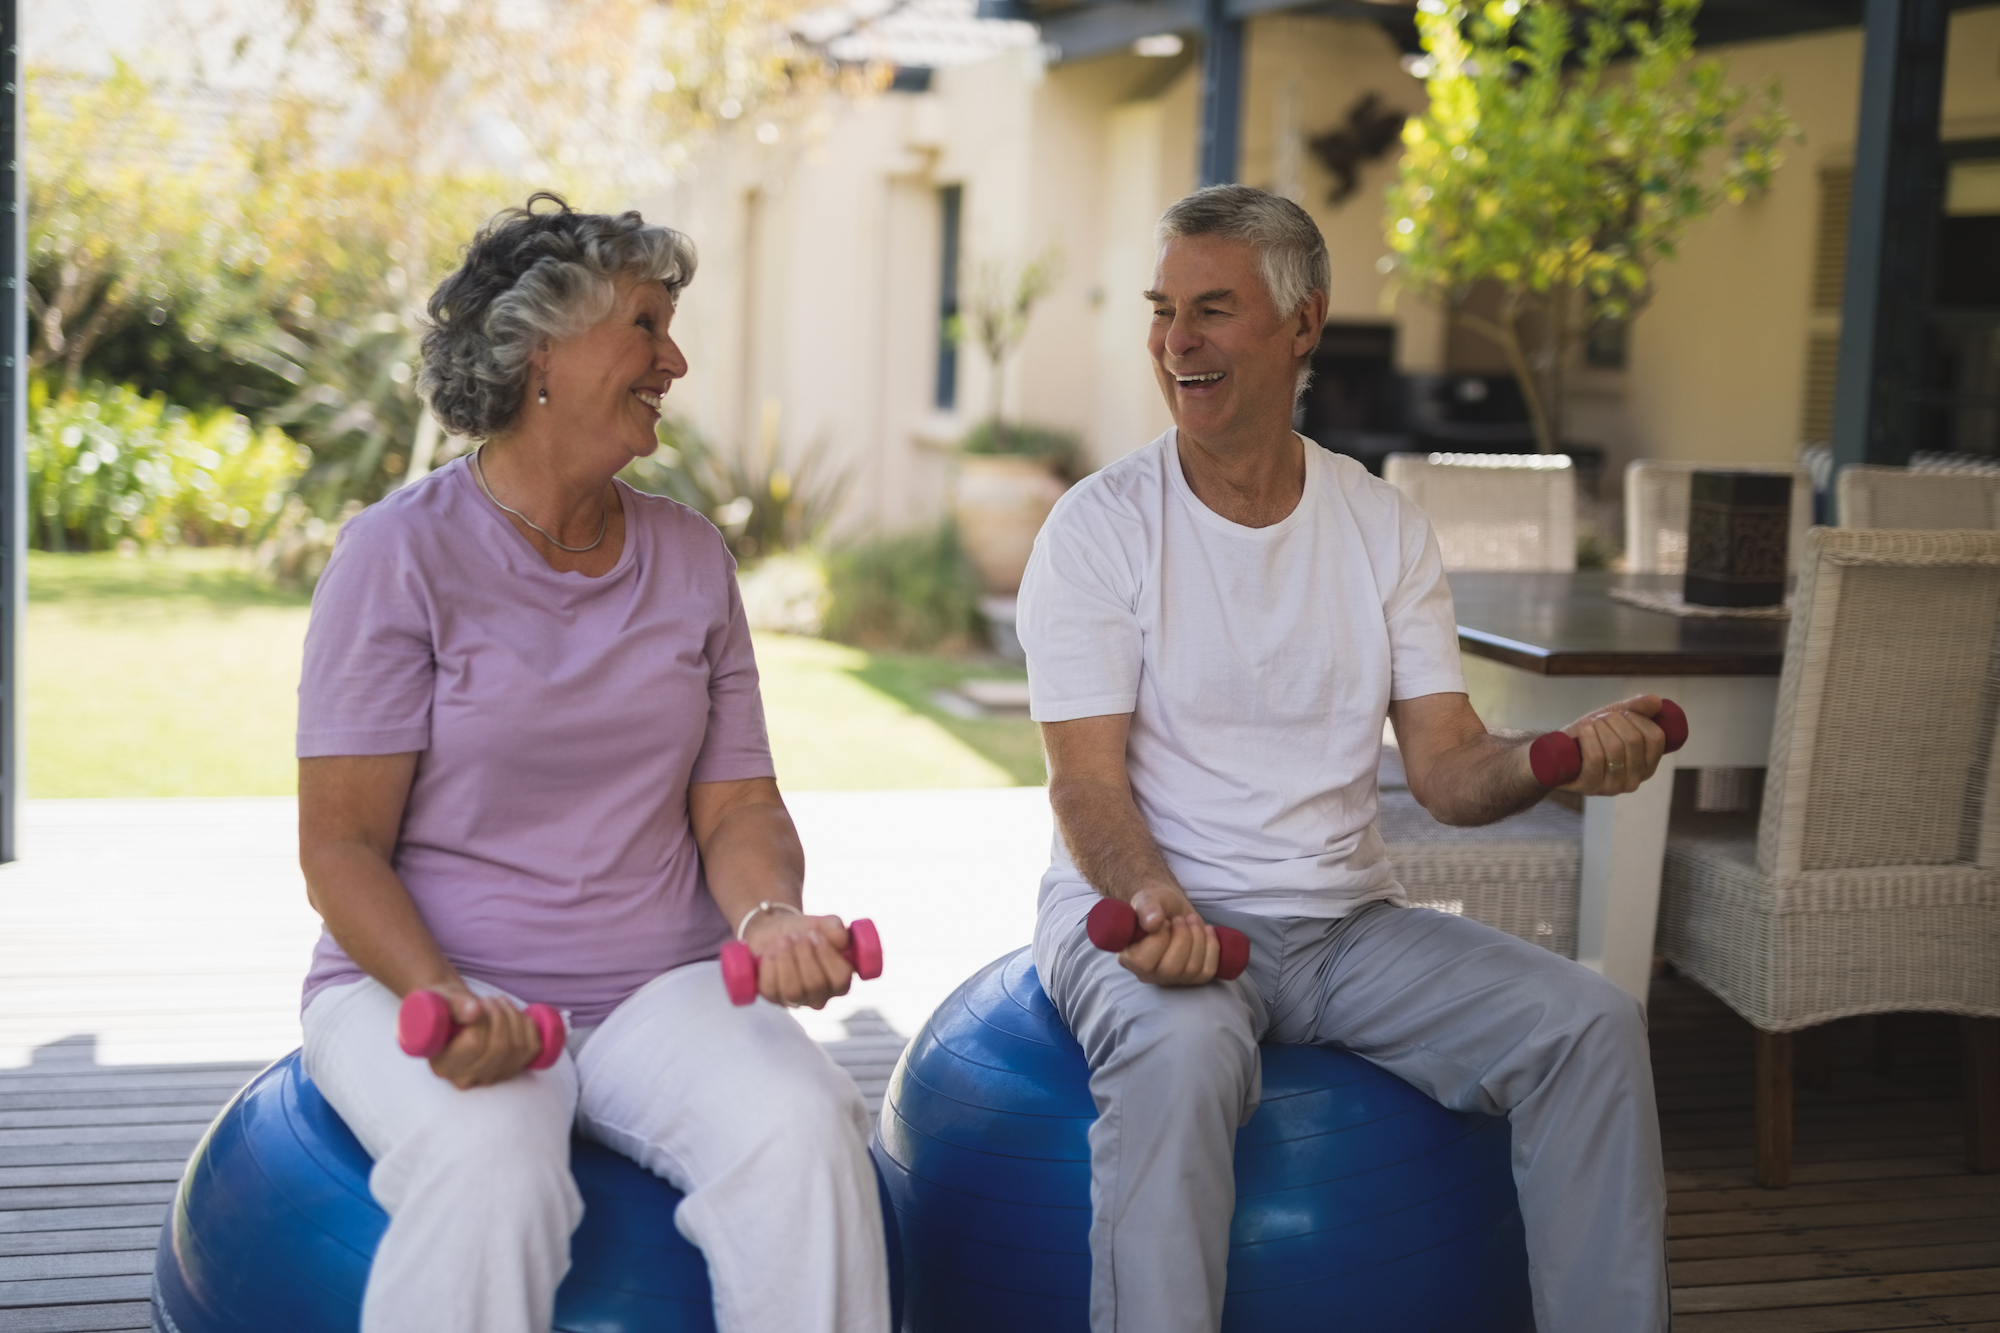 two seniors on balance balls with dumbells doing exercises in the back yard